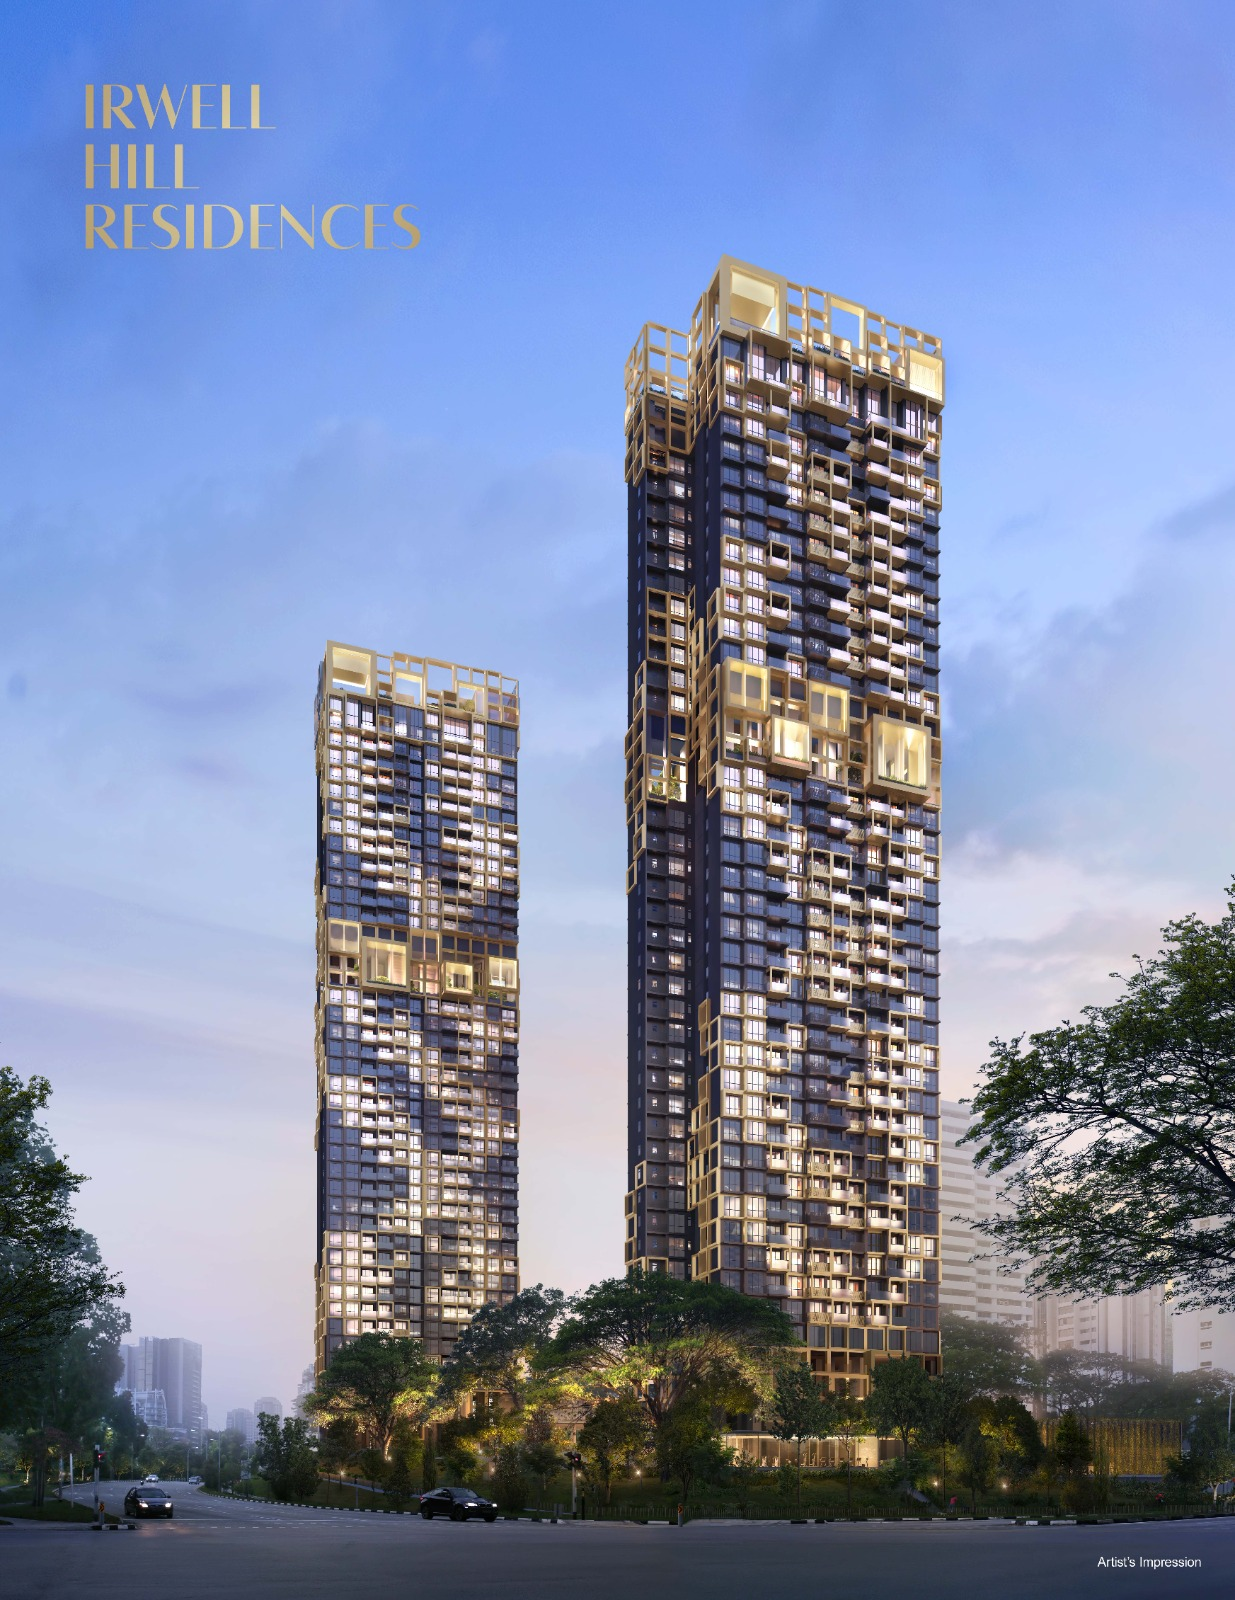 Irwell Hill Residences Towers